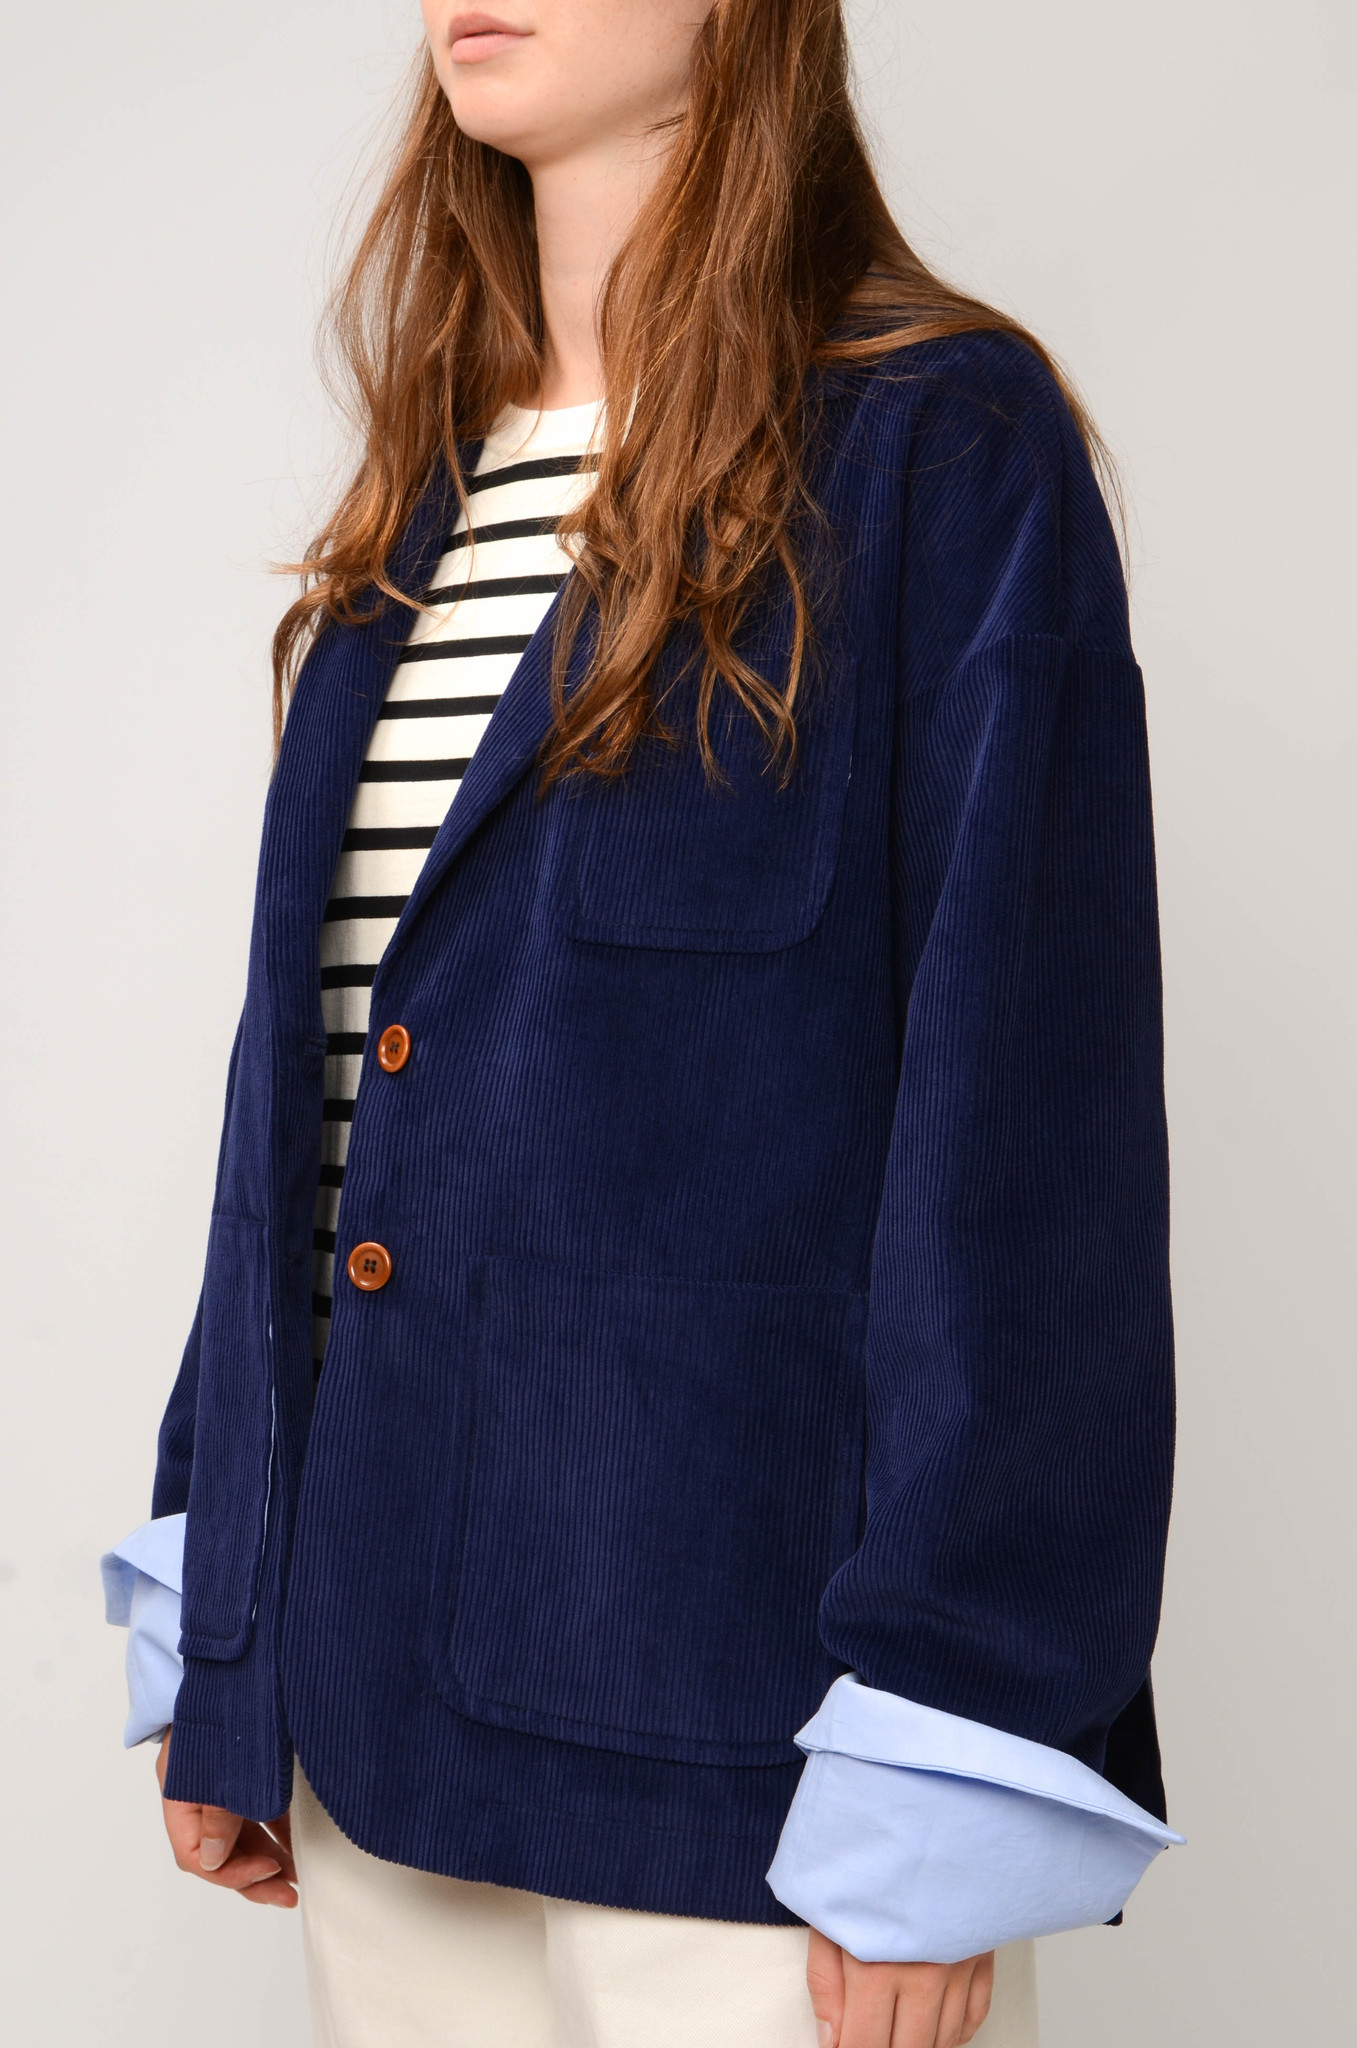 CAMILLE JACKET IN ROYAL BLUE-3